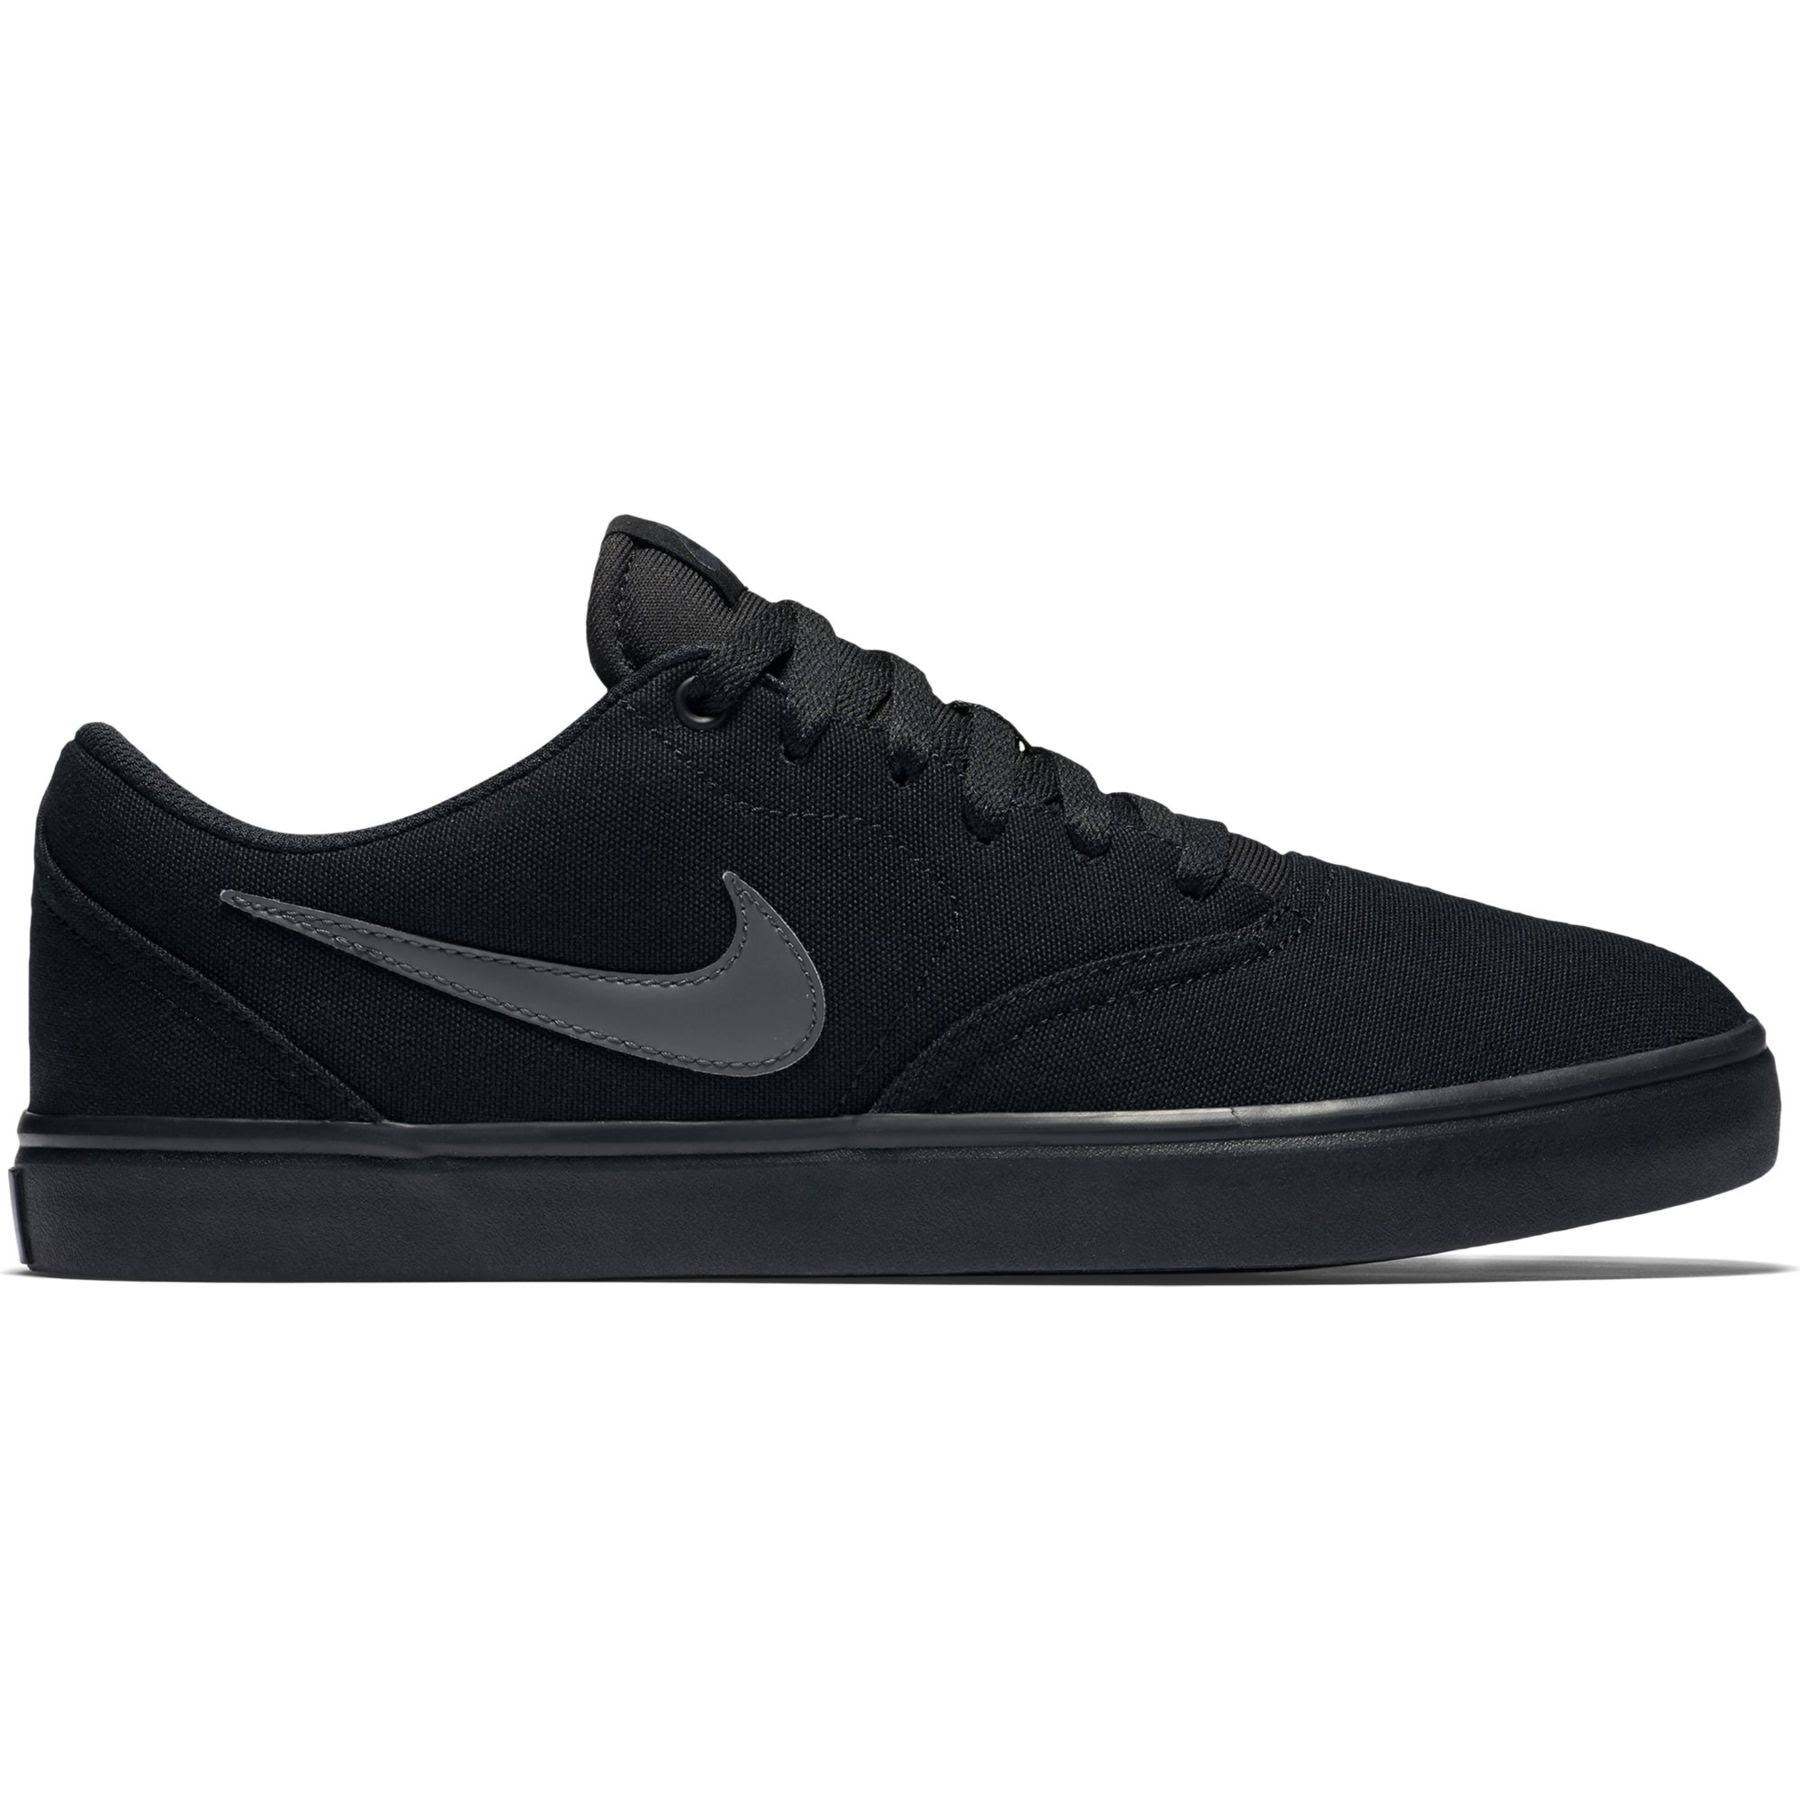 Nike SB Check Solar Canvas Black/Anthracite